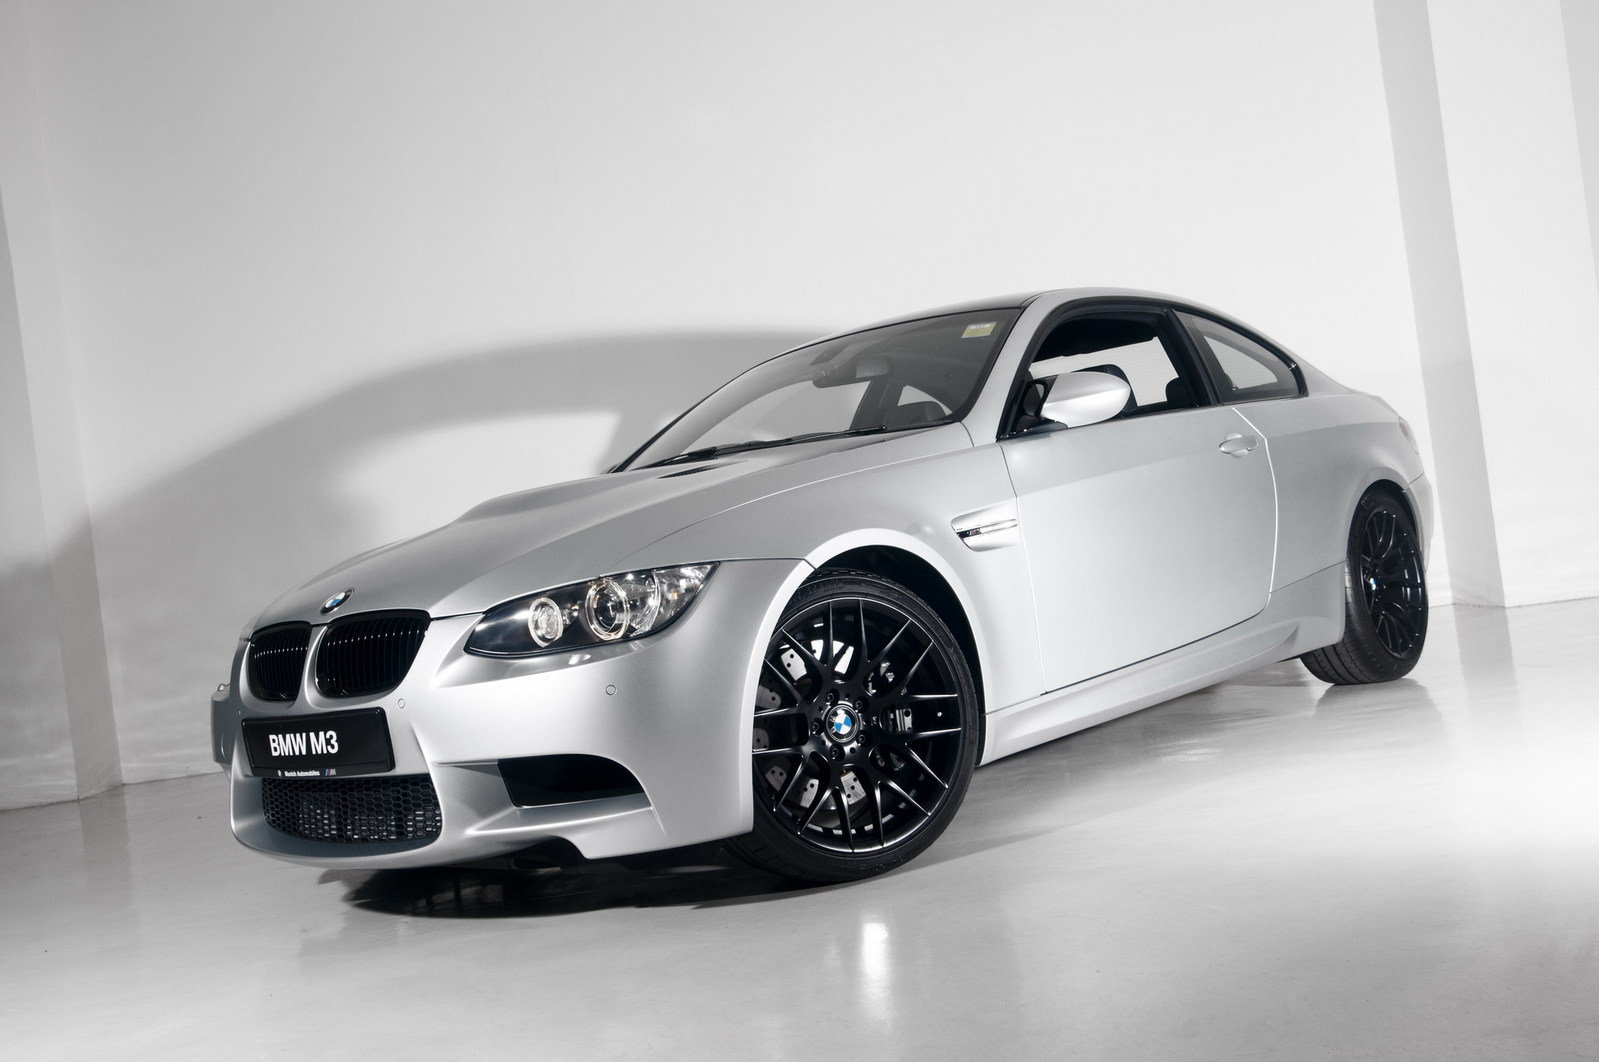 2012 bmw m3 coup comp tition edition dark cars wallpapers. Black Bedroom Furniture Sets. Home Design Ideas